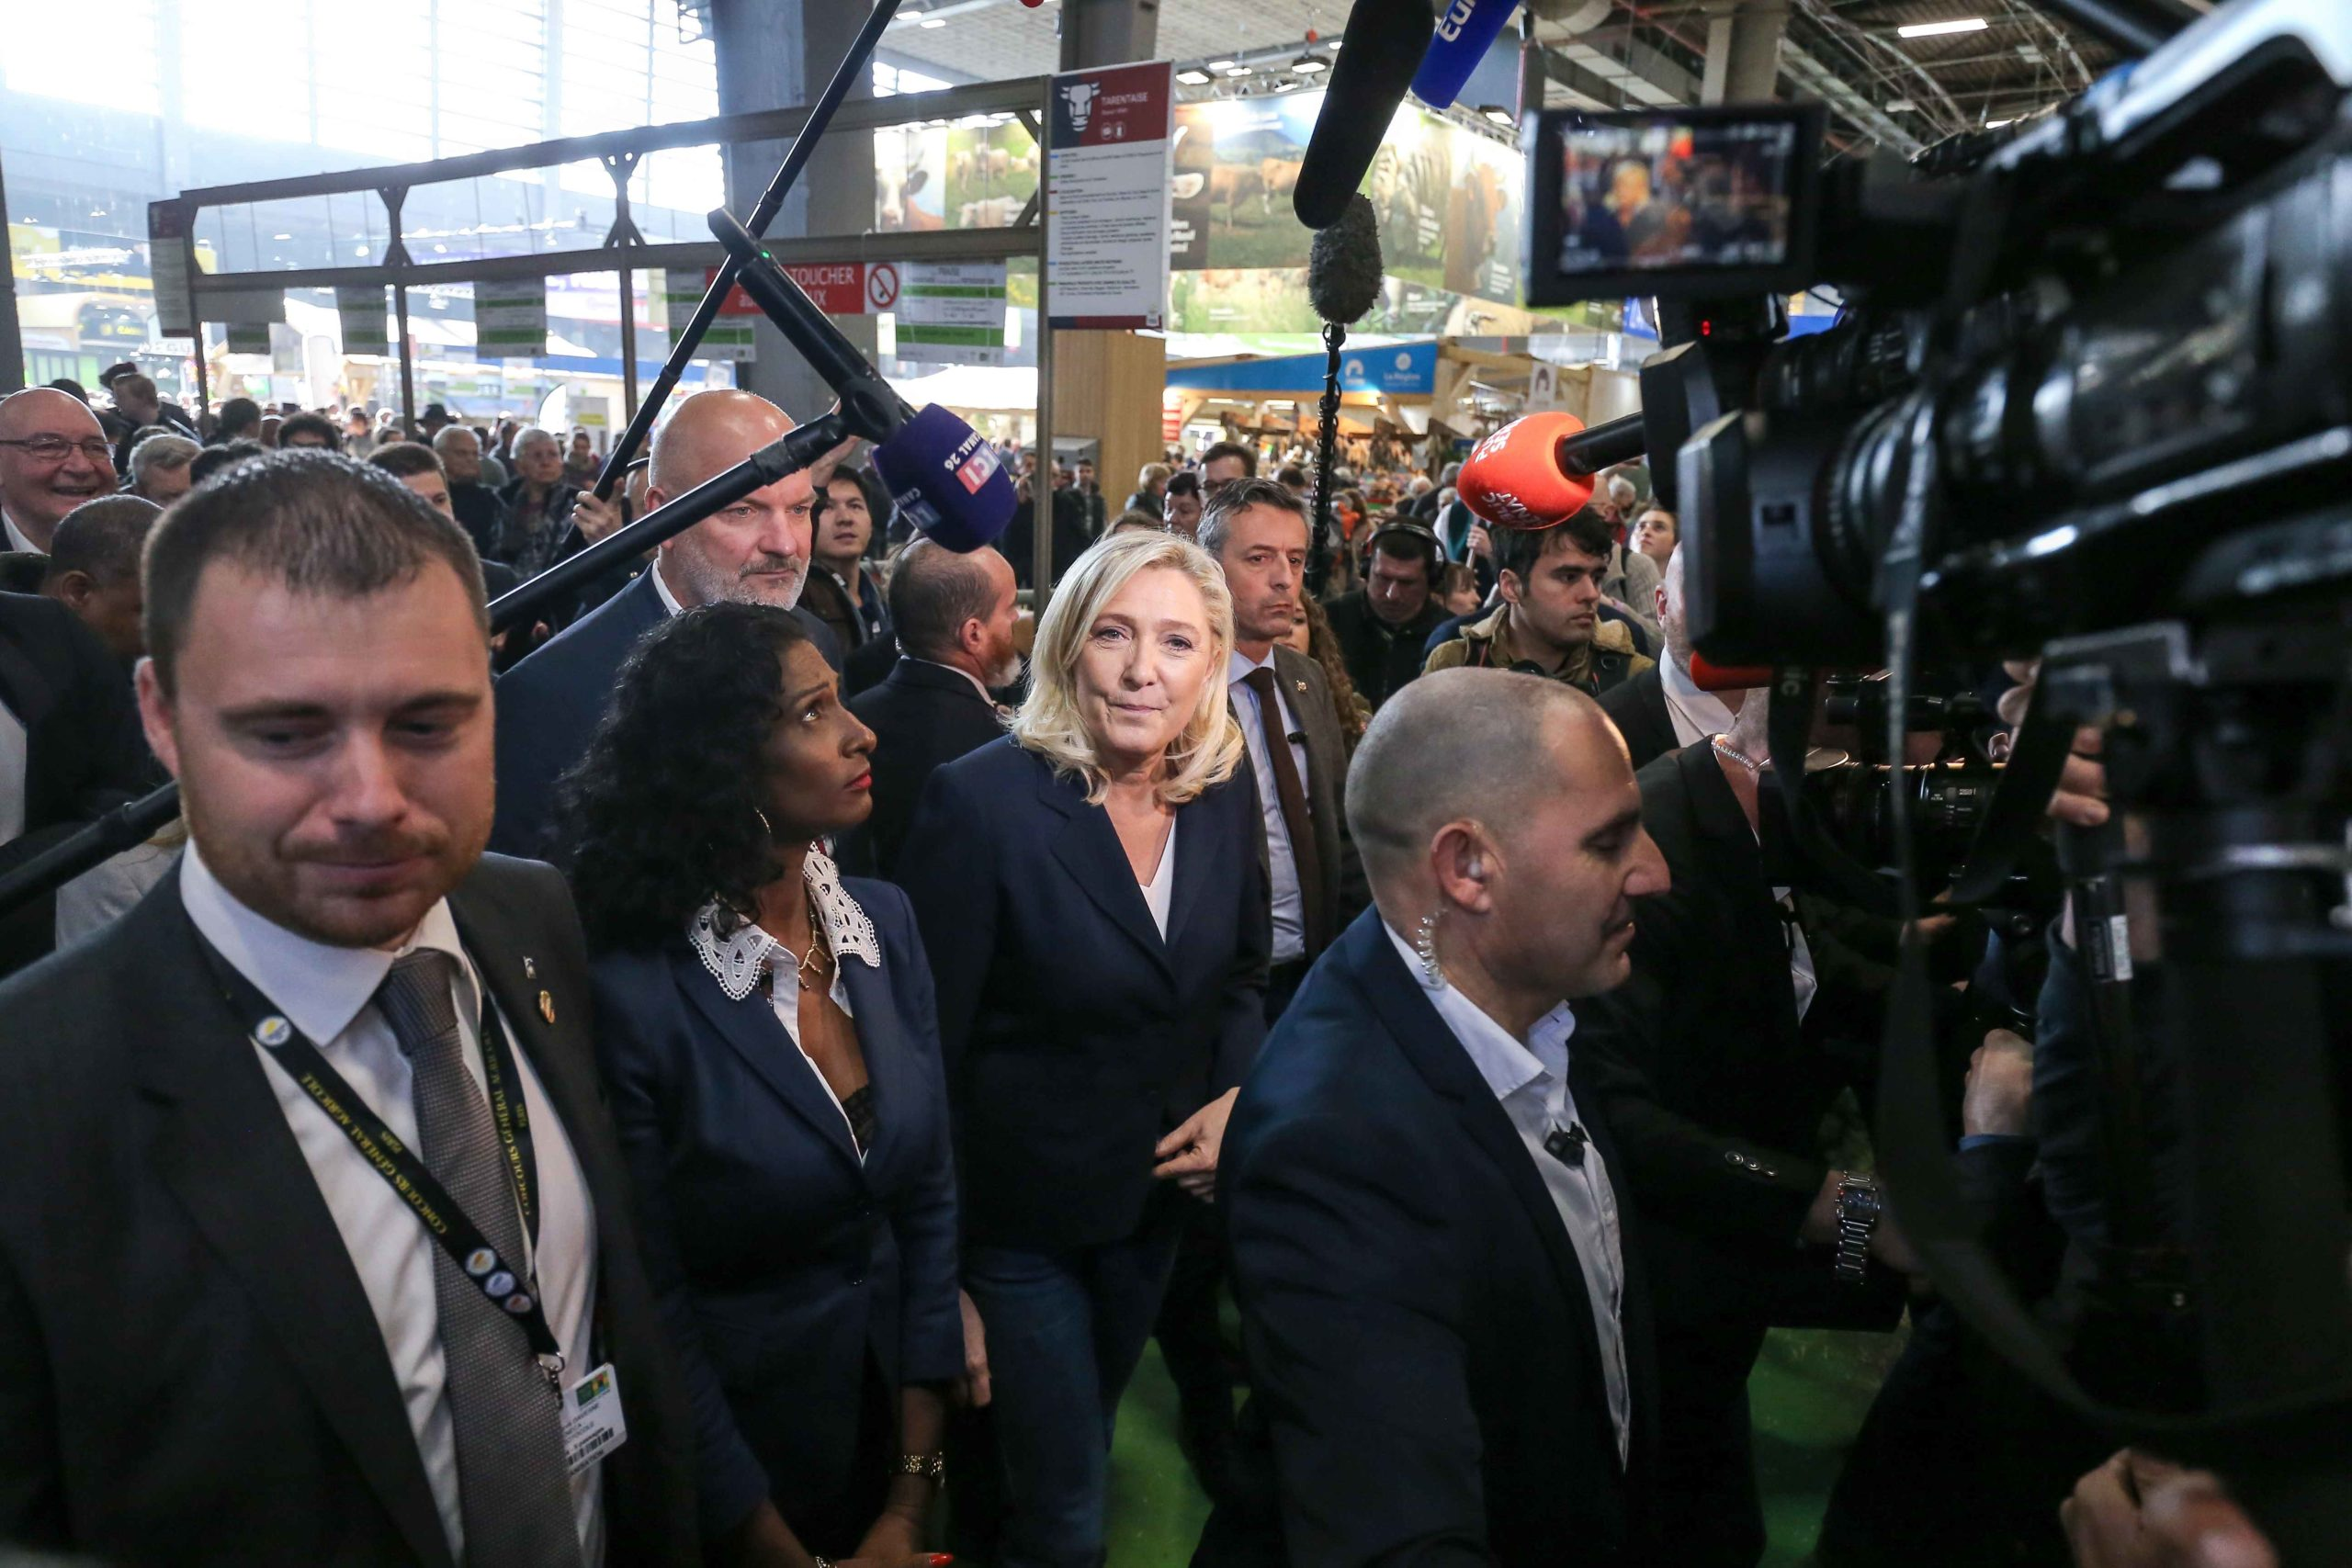 Marine Le Pen visite le Salon international de l'agriculture. © Michel Stoupak. Mar 25.02.2020, 10:21:46.